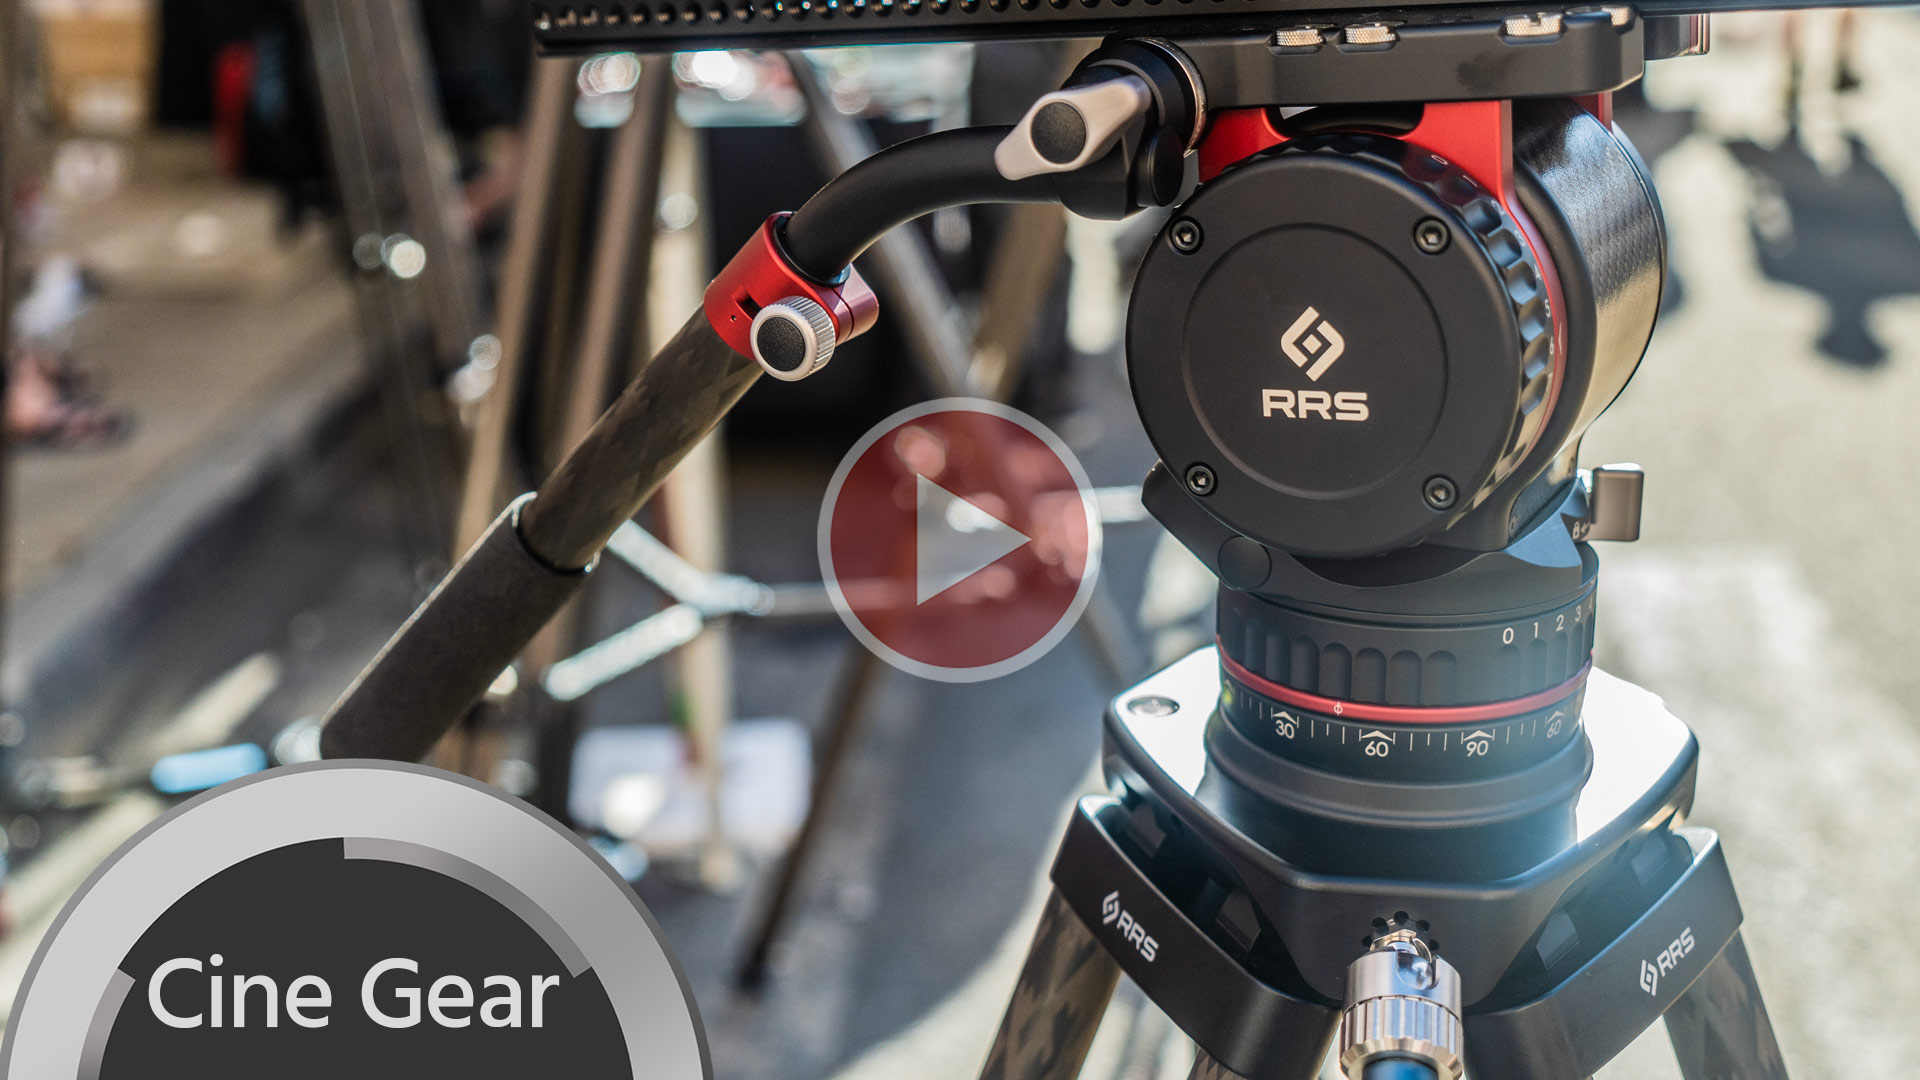 News Cinema5d Sony Cyber Shot Dsc Rx100 Vi Package 2 Shooting Grip Vct Sgr1